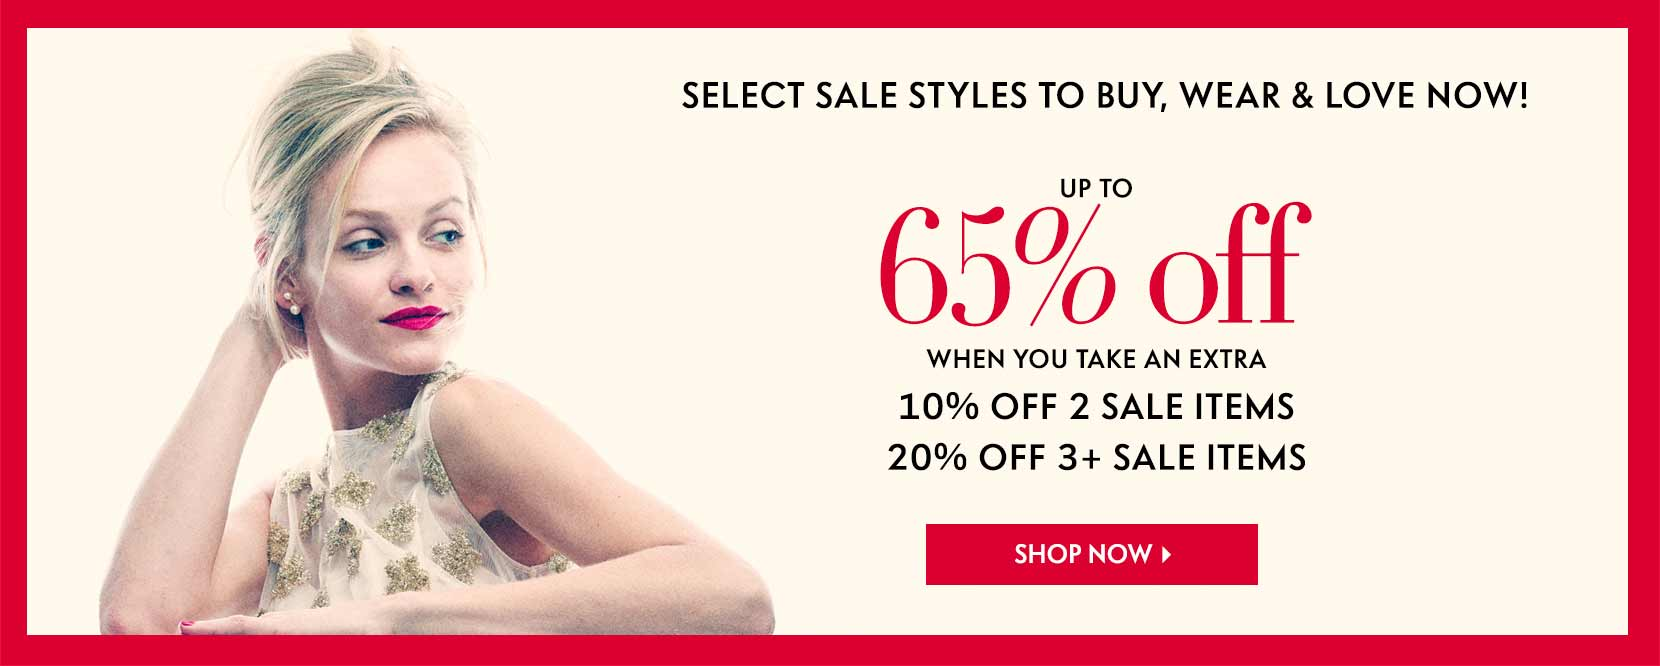 Select sale styles to buy, wear, and love now! Up to 65% off when you take an extra 10% off 2 sale items 20% off 3 sale items